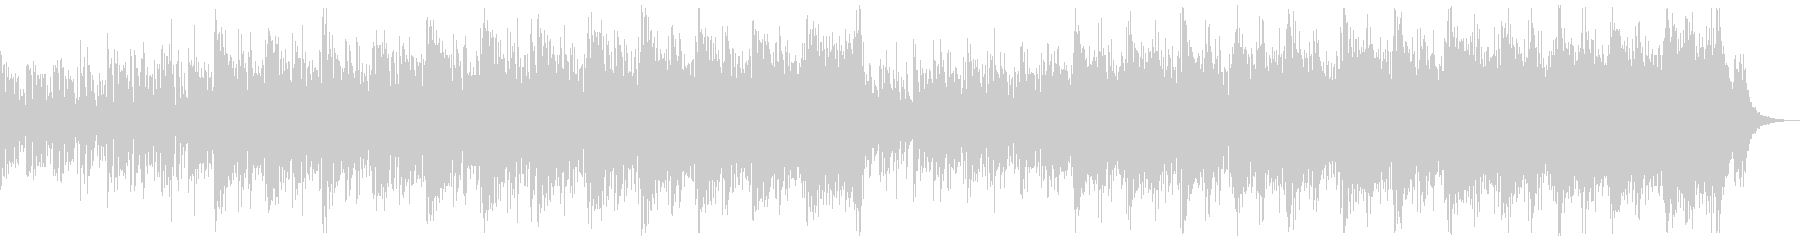 Cinematic Orchestra Strategy / Tension's unreproduced waveform